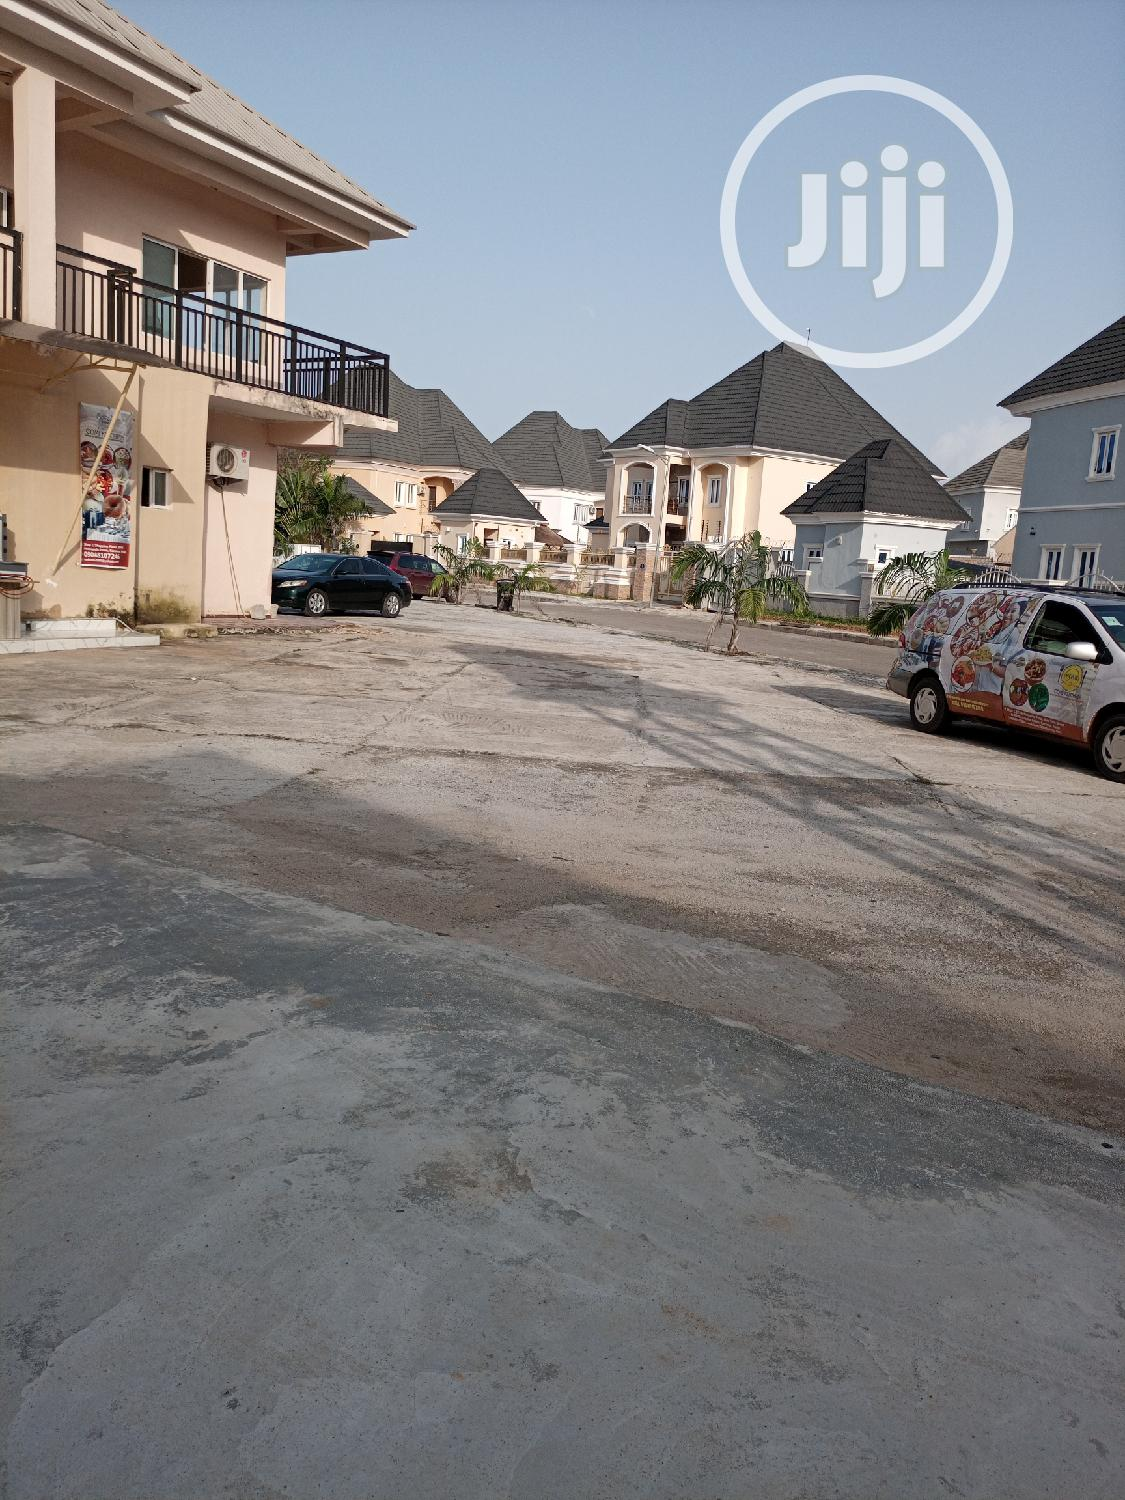 5 Bedrooms Duplex At Roofed Carcass Stage | Houses & Apartments For Sale for sale in Gwarinpa, Abuja (FCT) State, Nigeria